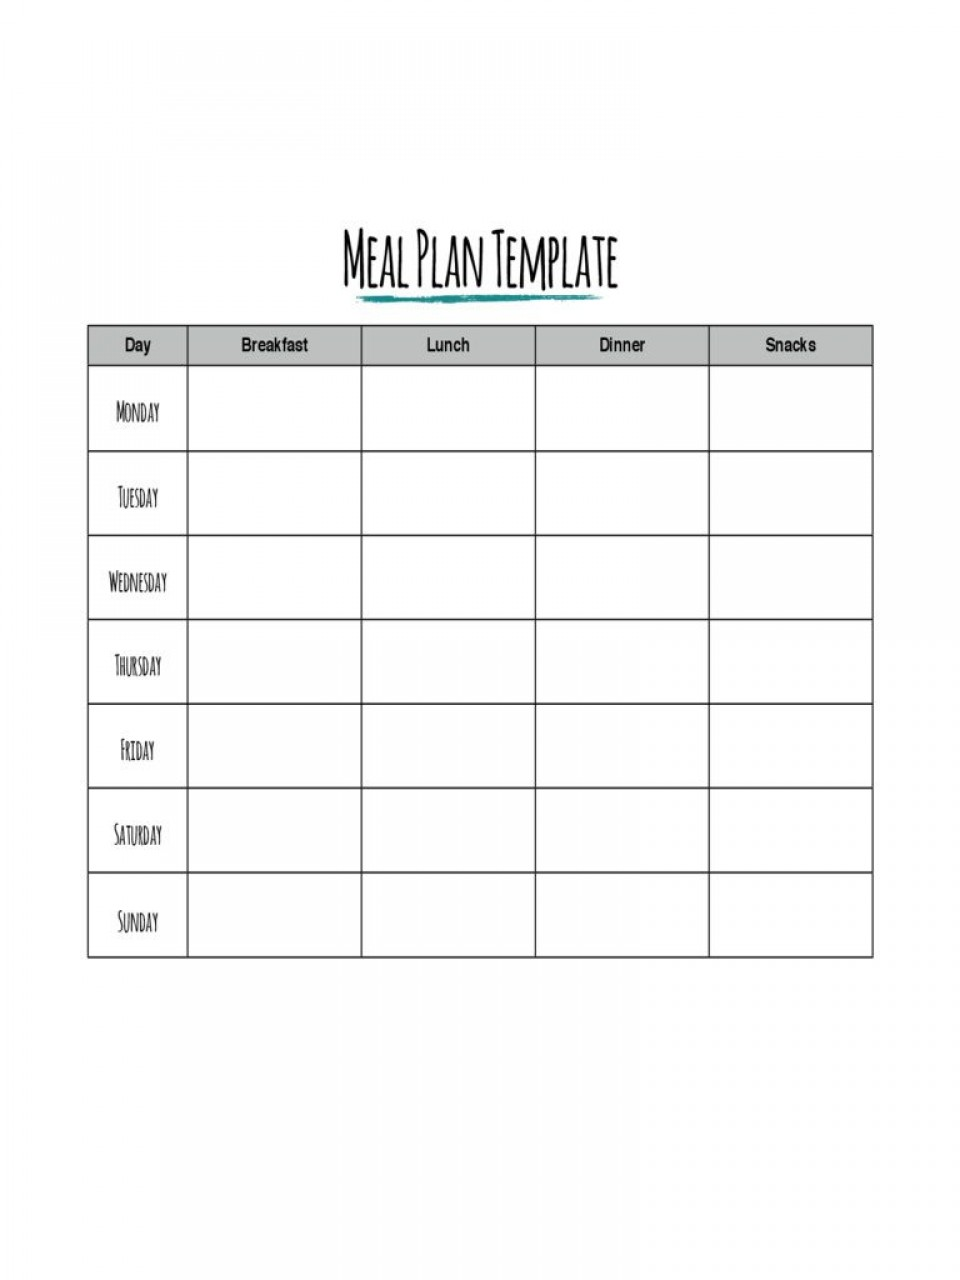 002 Formidable Meal Plan Template Pdf Example  Sample Diabetic960